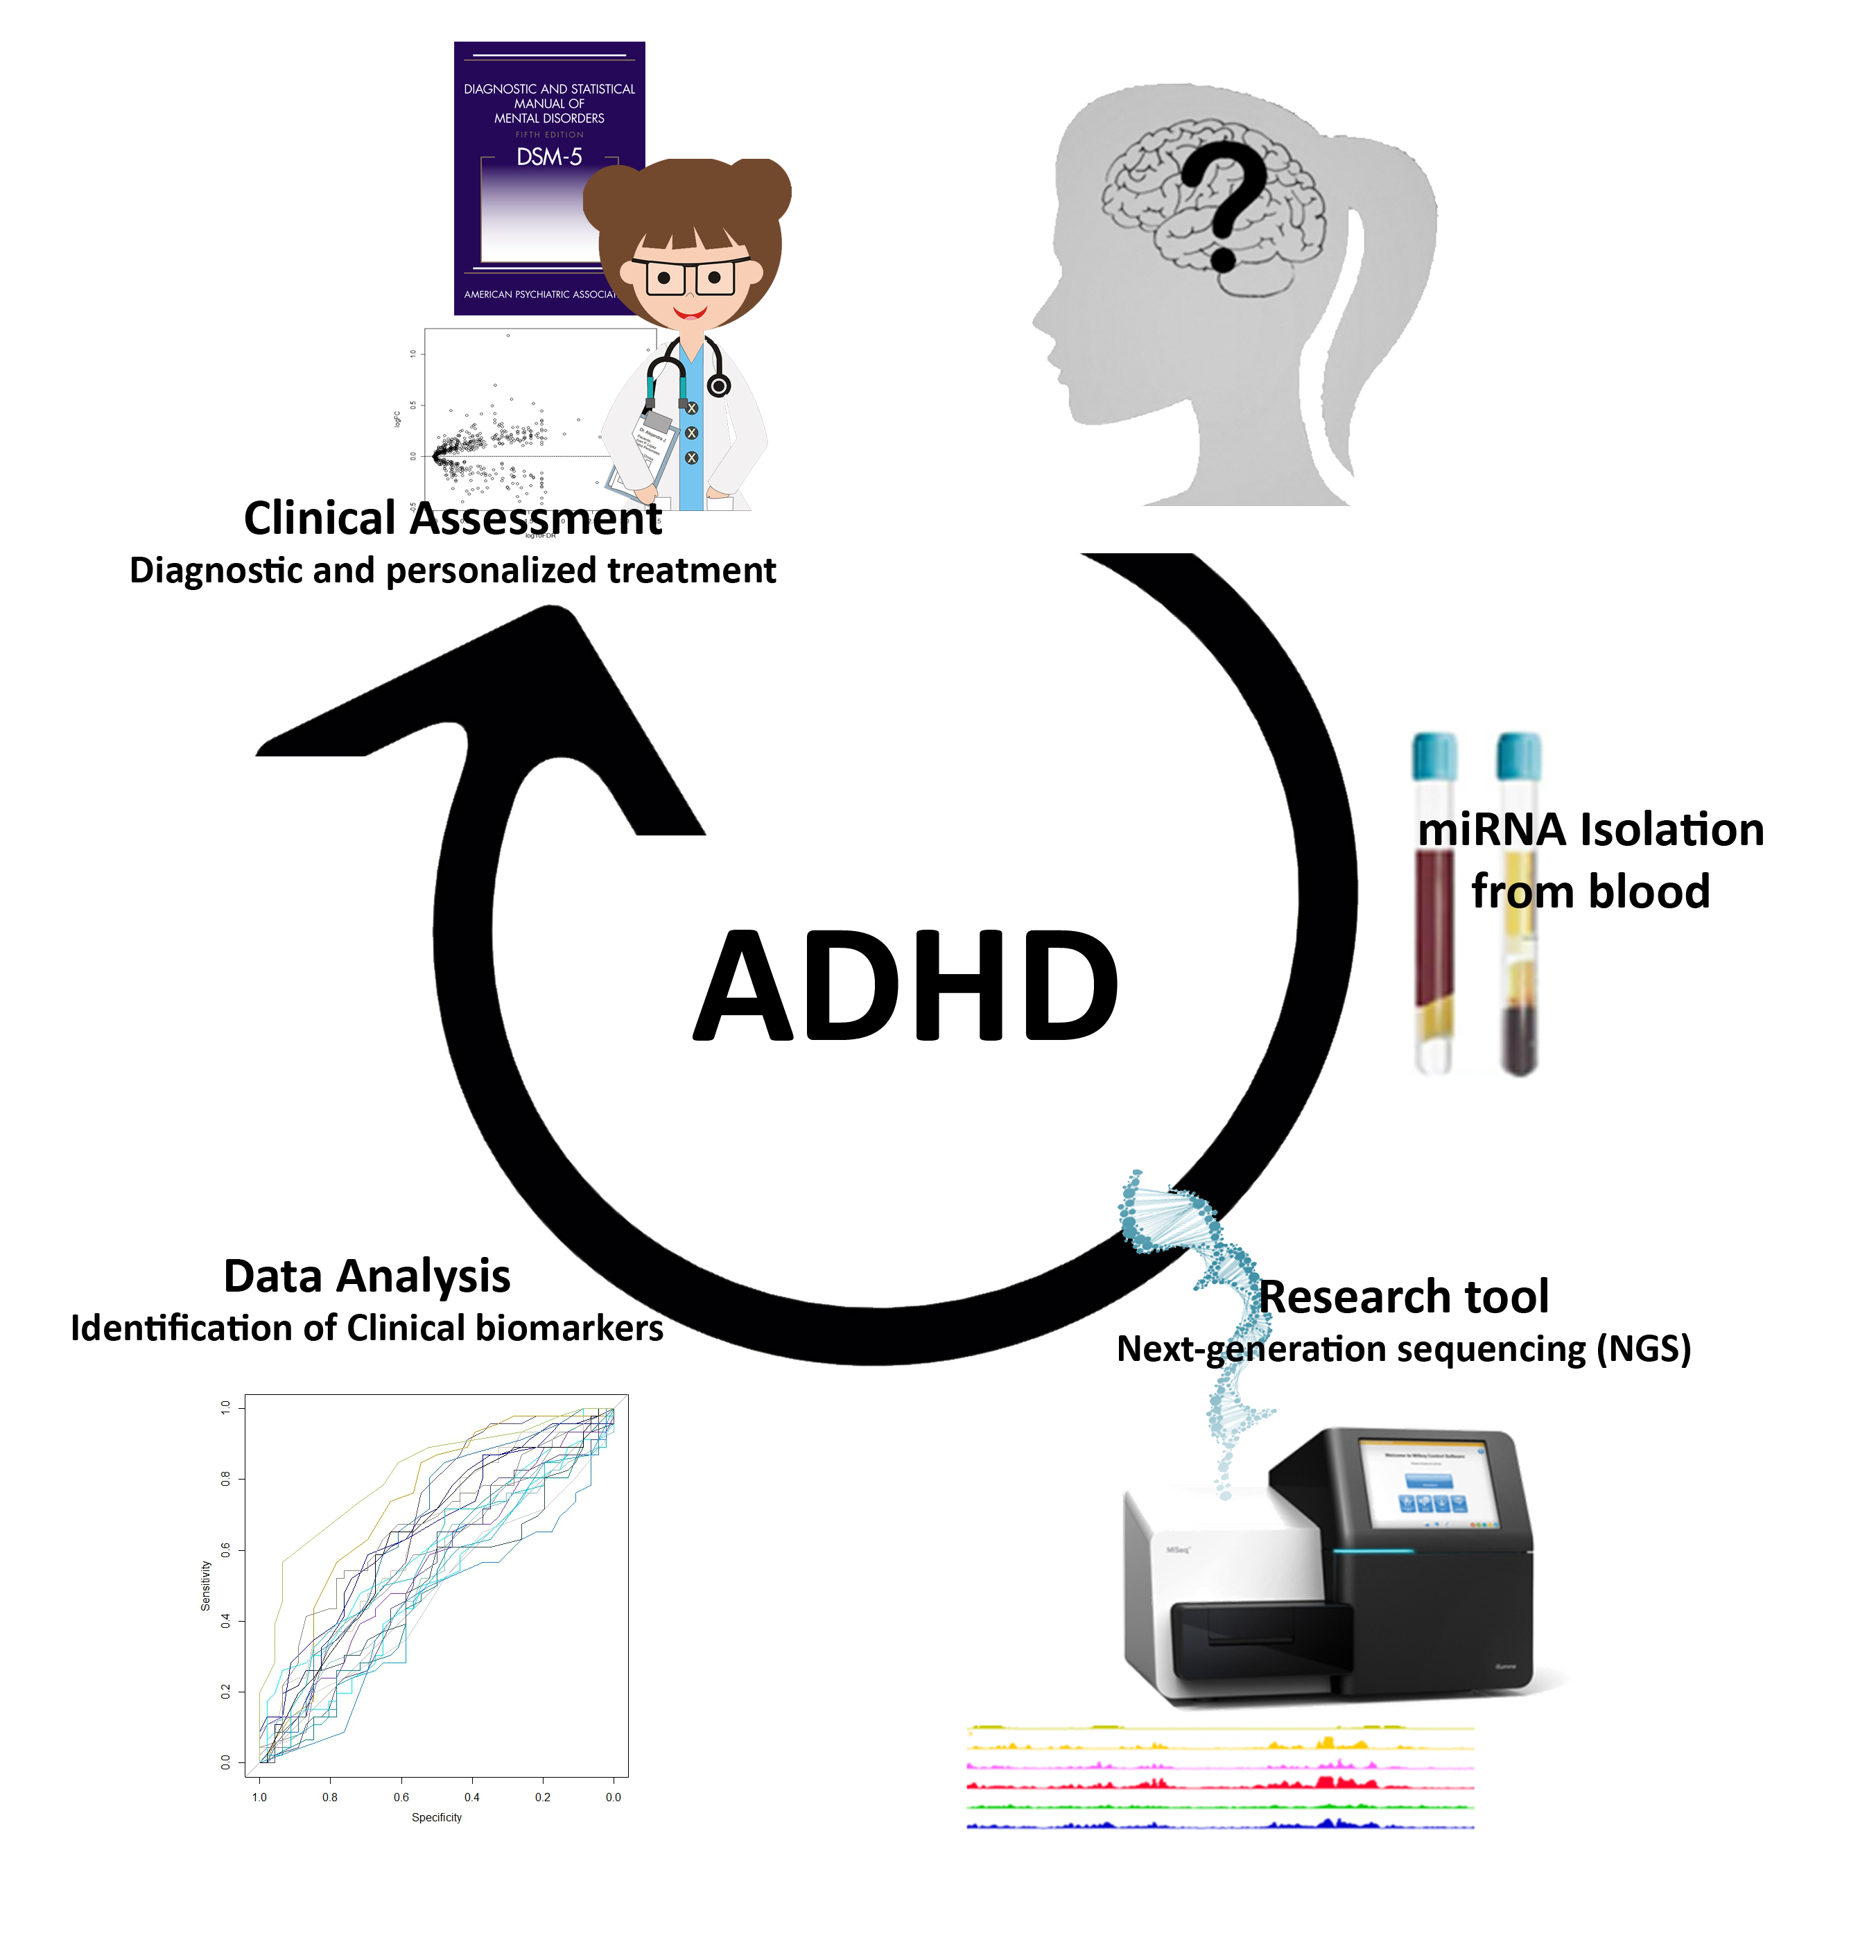 Recent Developments In The Genetics Of Attention Deficit Hyperactivity >> Epigenetic Signature For Attention Deficit Hyperactivity